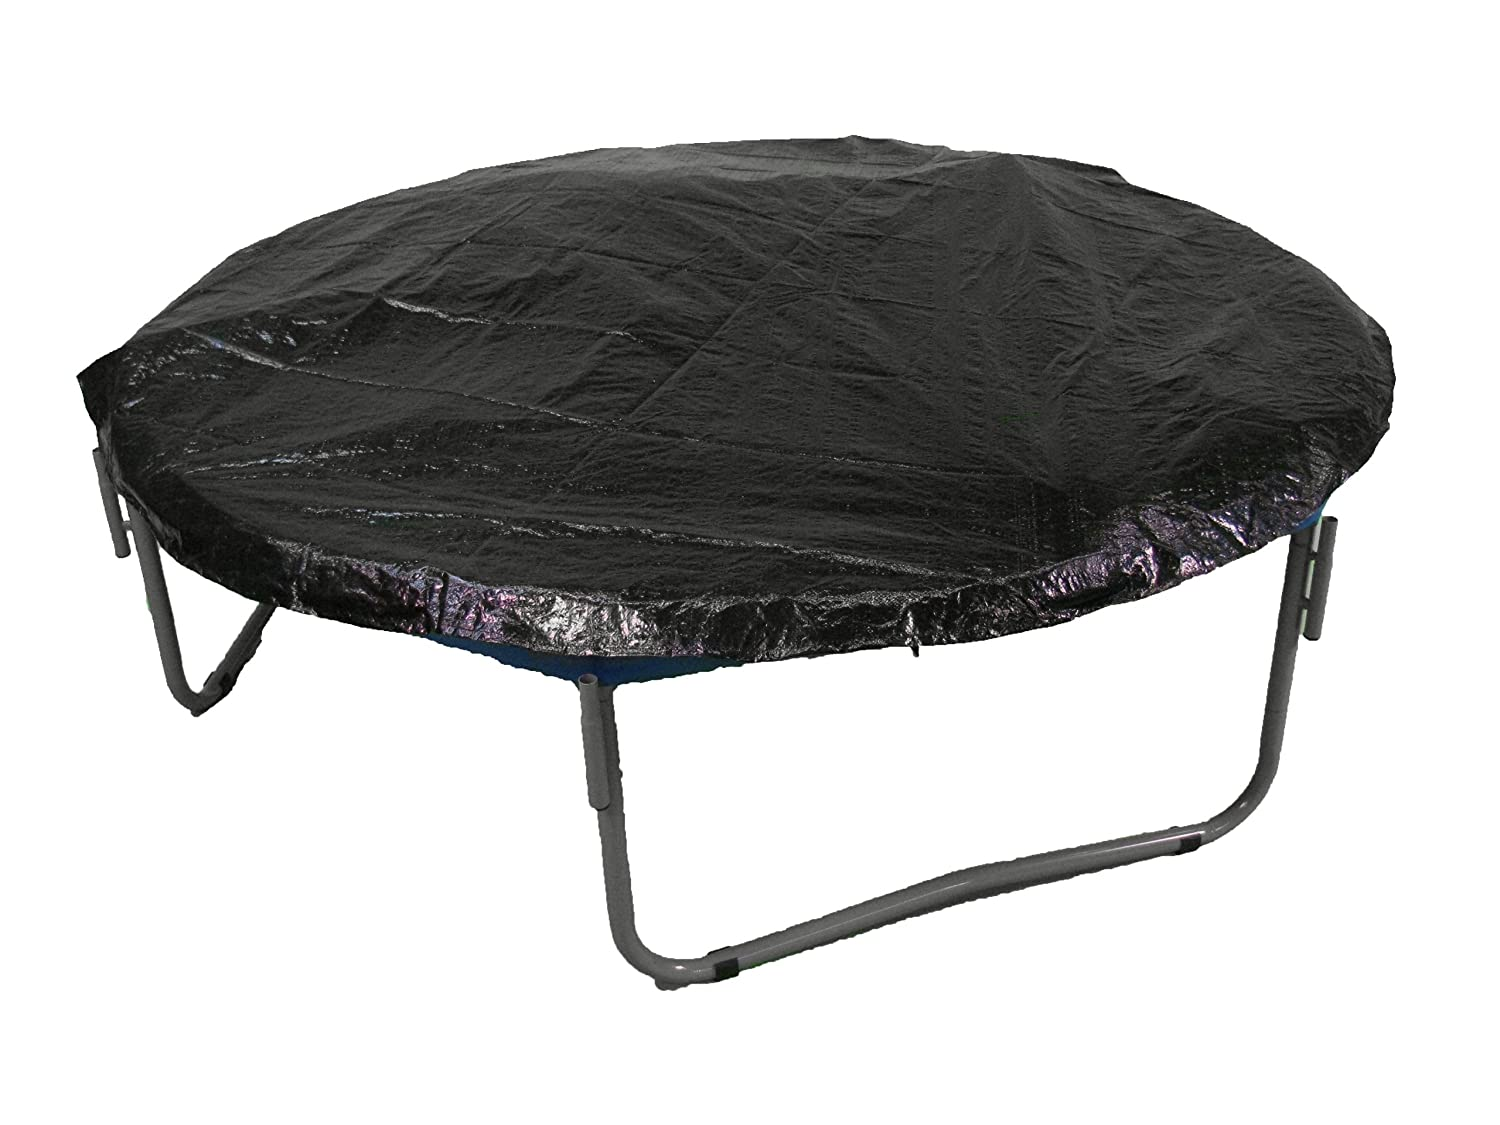 Upper Bounce Black Color 14' Trampoline Weather Protective Cover Frame Rain Shield Protection Fits 14FT Round Trampoline Frames